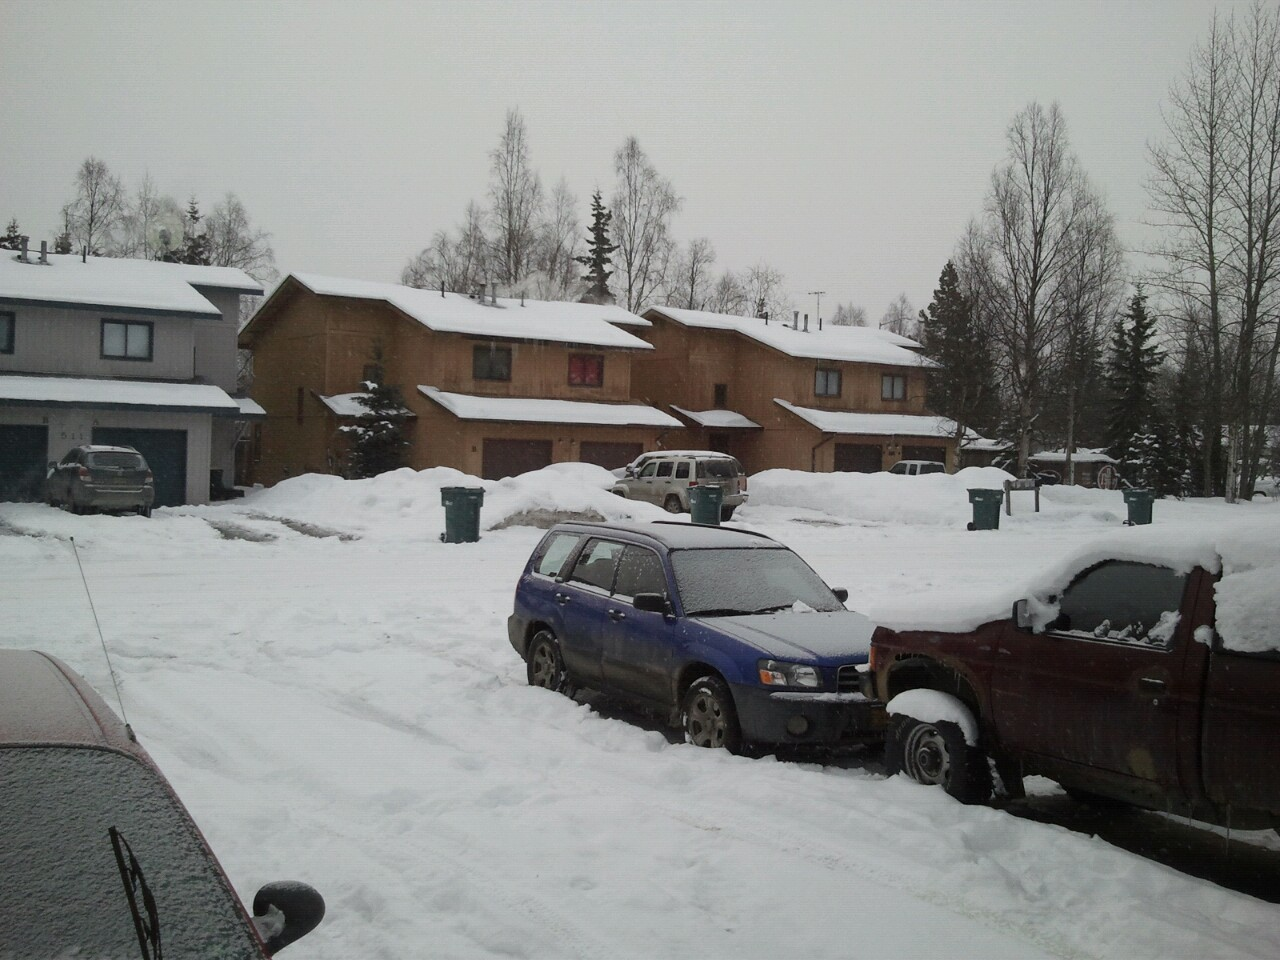 Last week it was spring time here in Anchorage, Alaska. The temperatures were in the forties, the sun was always out. With everything thawing out the green was on it's way. Now it is -8° in front of my house here in the Muldoon neighborhood. It's snowing and the sun is nowhere to be found. Who pissed off weatherman?